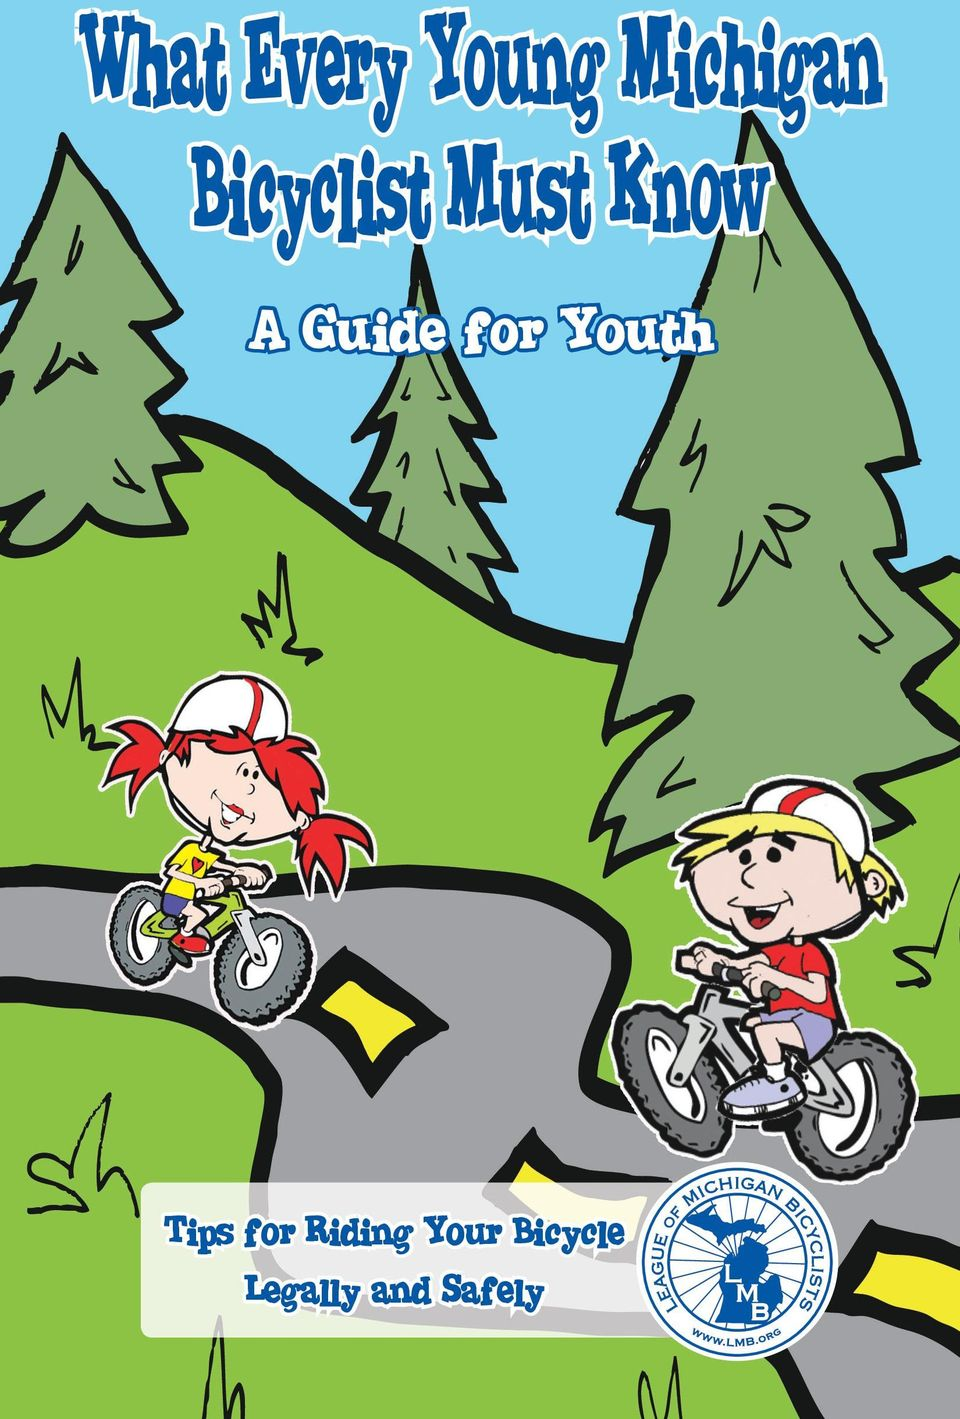 for Youth Tips for Riding